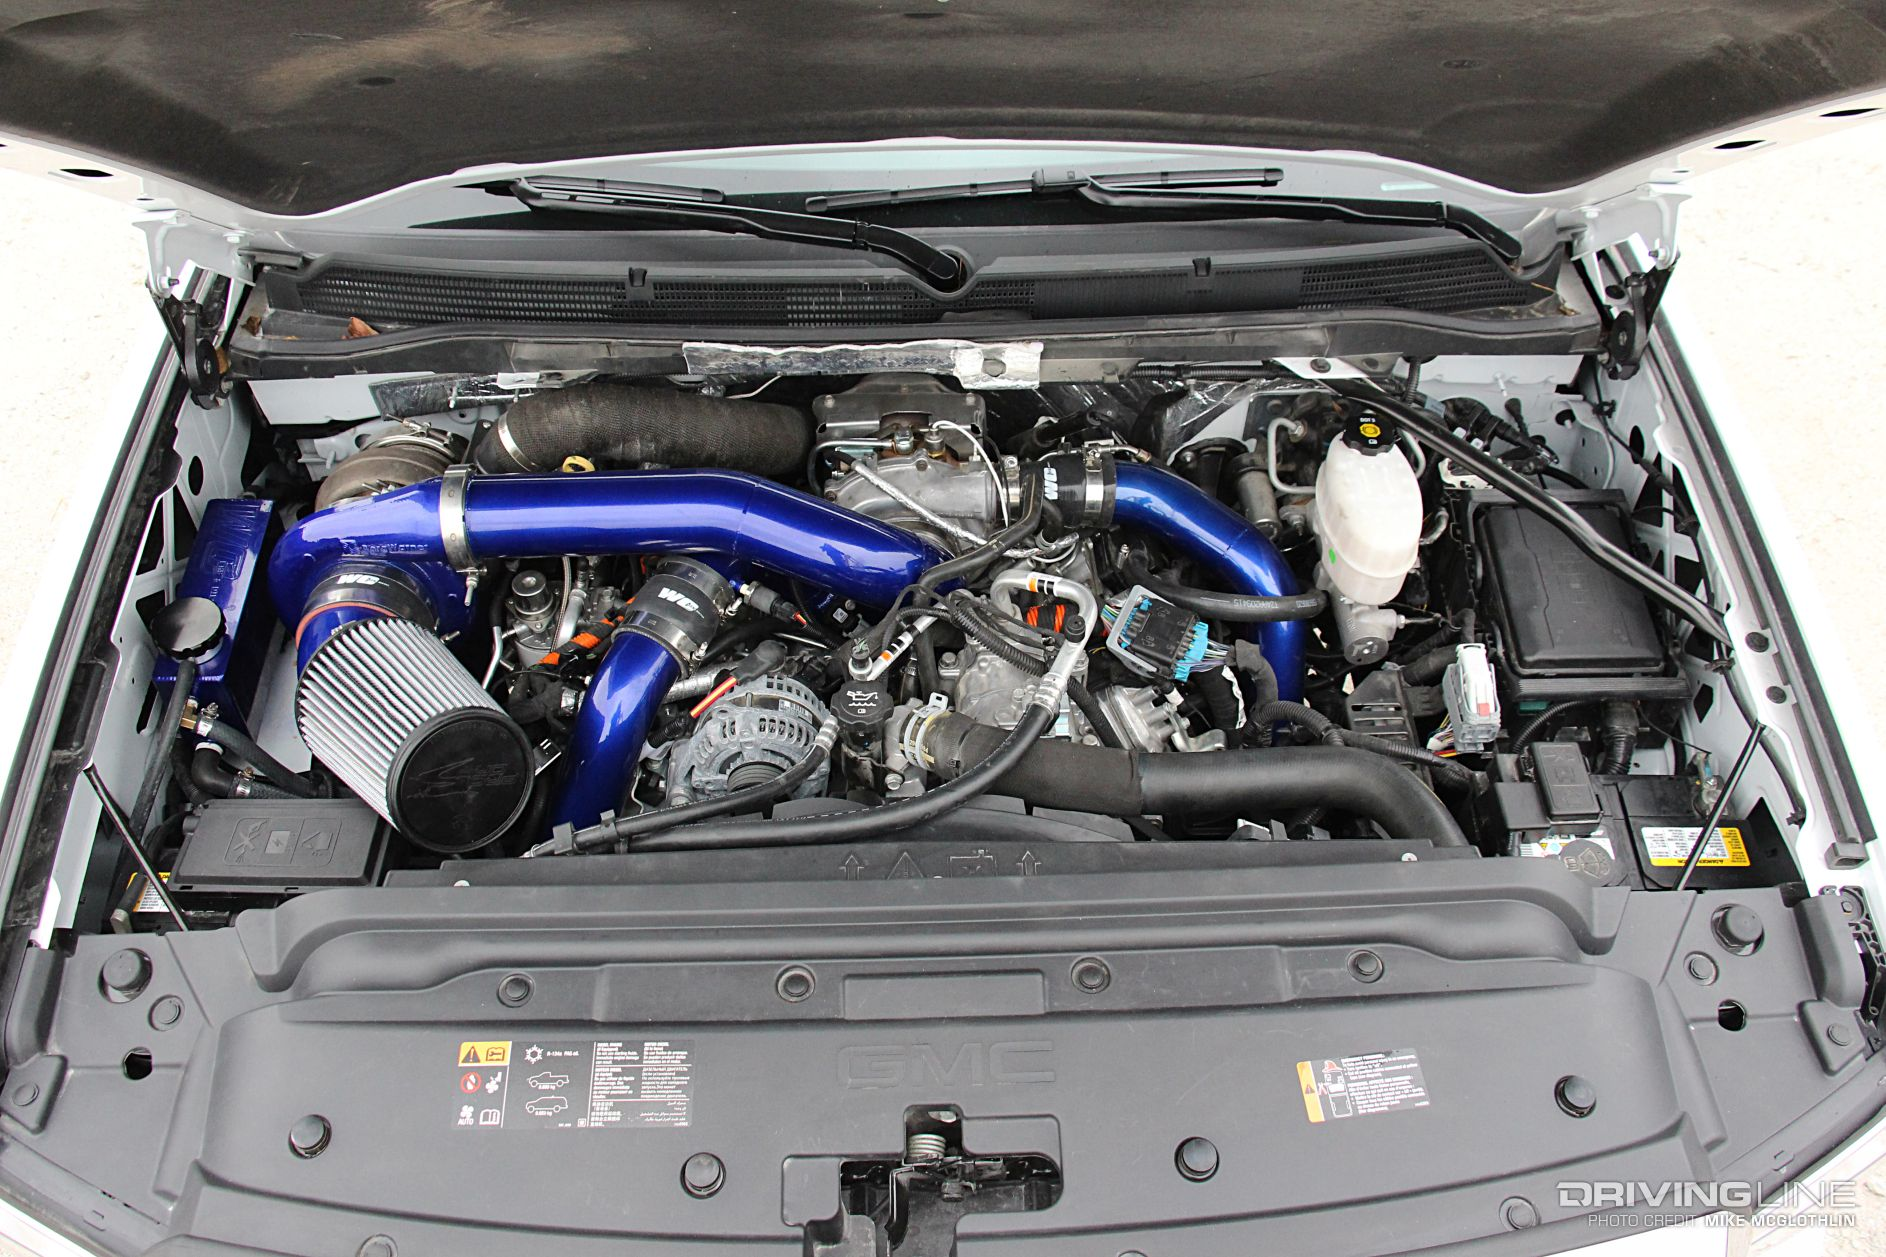 pound Turbocharged Diesel Engines 101